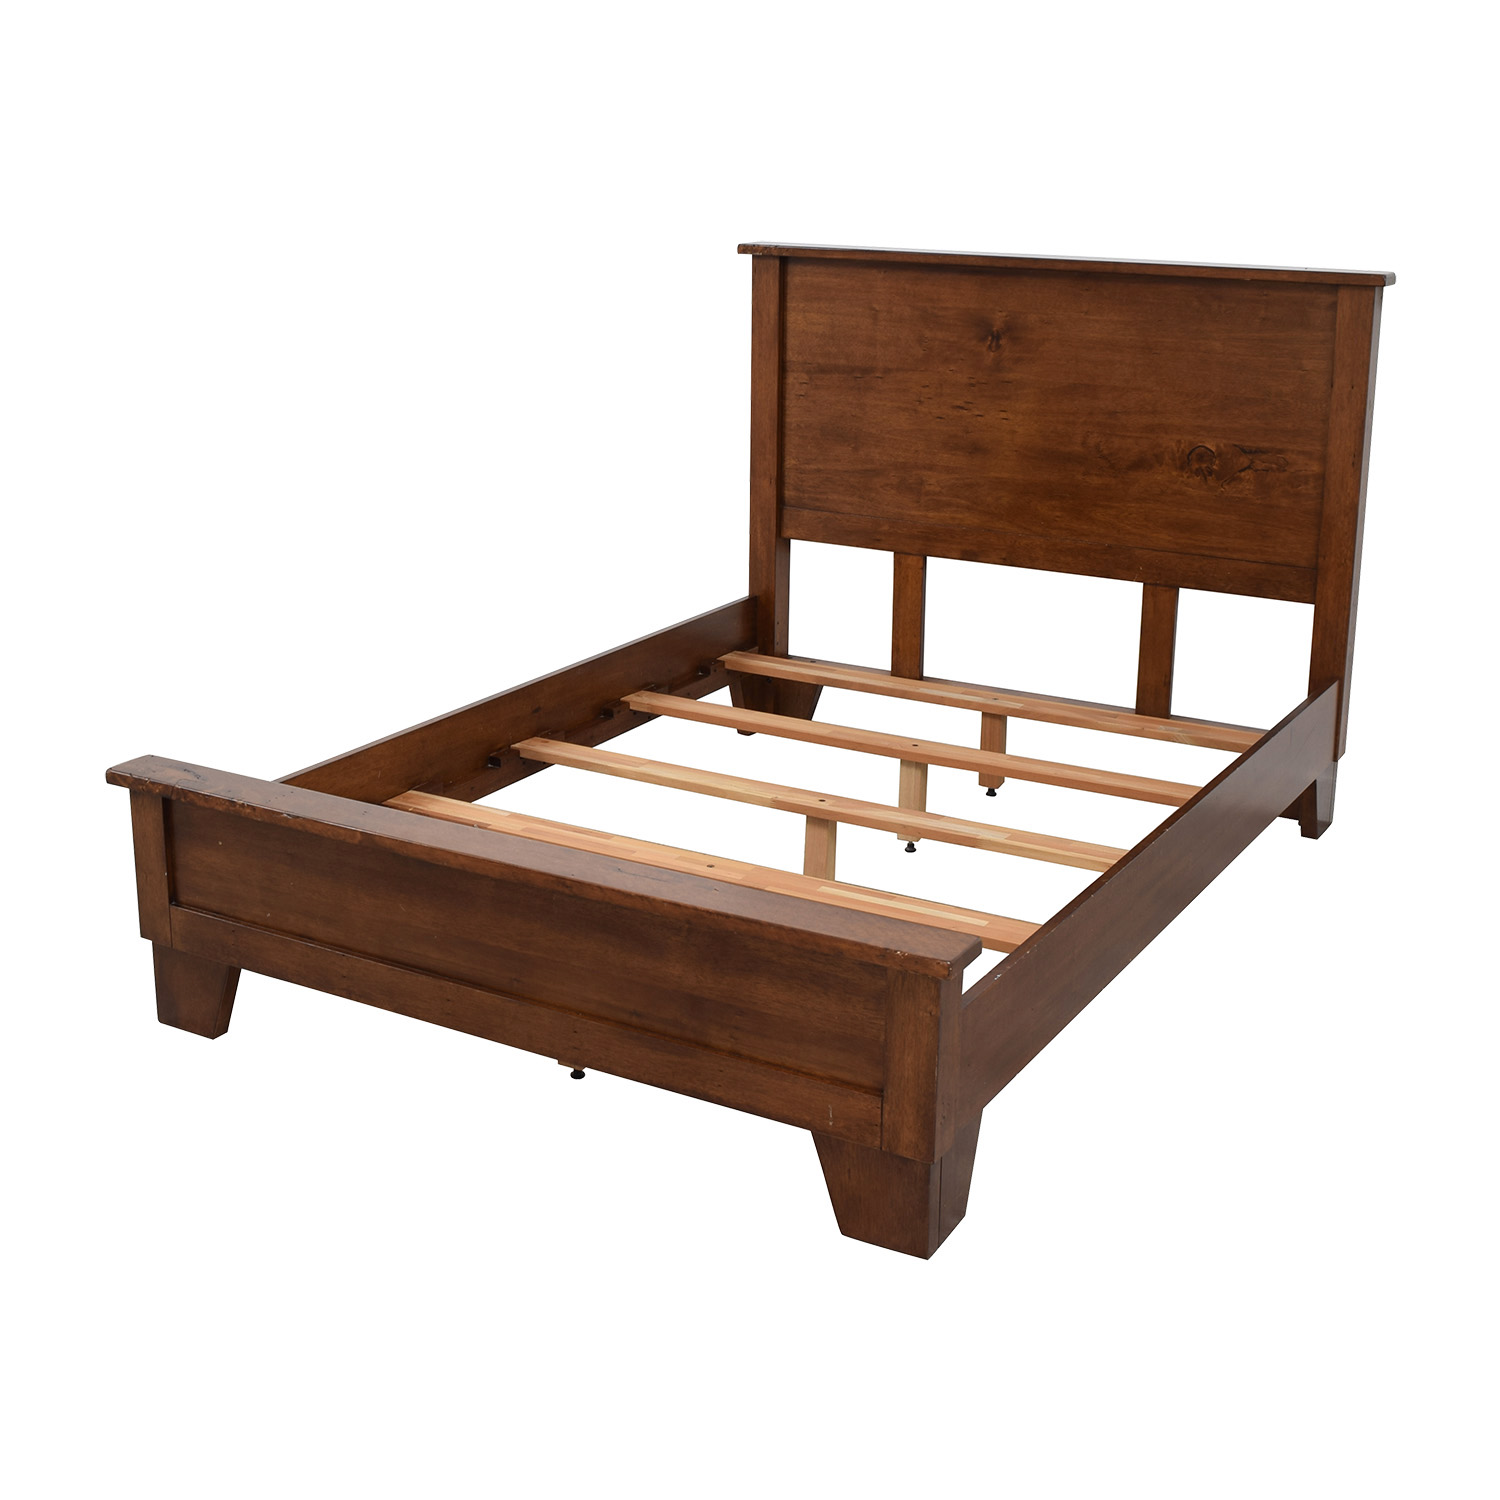 Pottery Barn Furniture Measurements: Pottery Barn Pottery Barn Sumatra Wood Full Bed